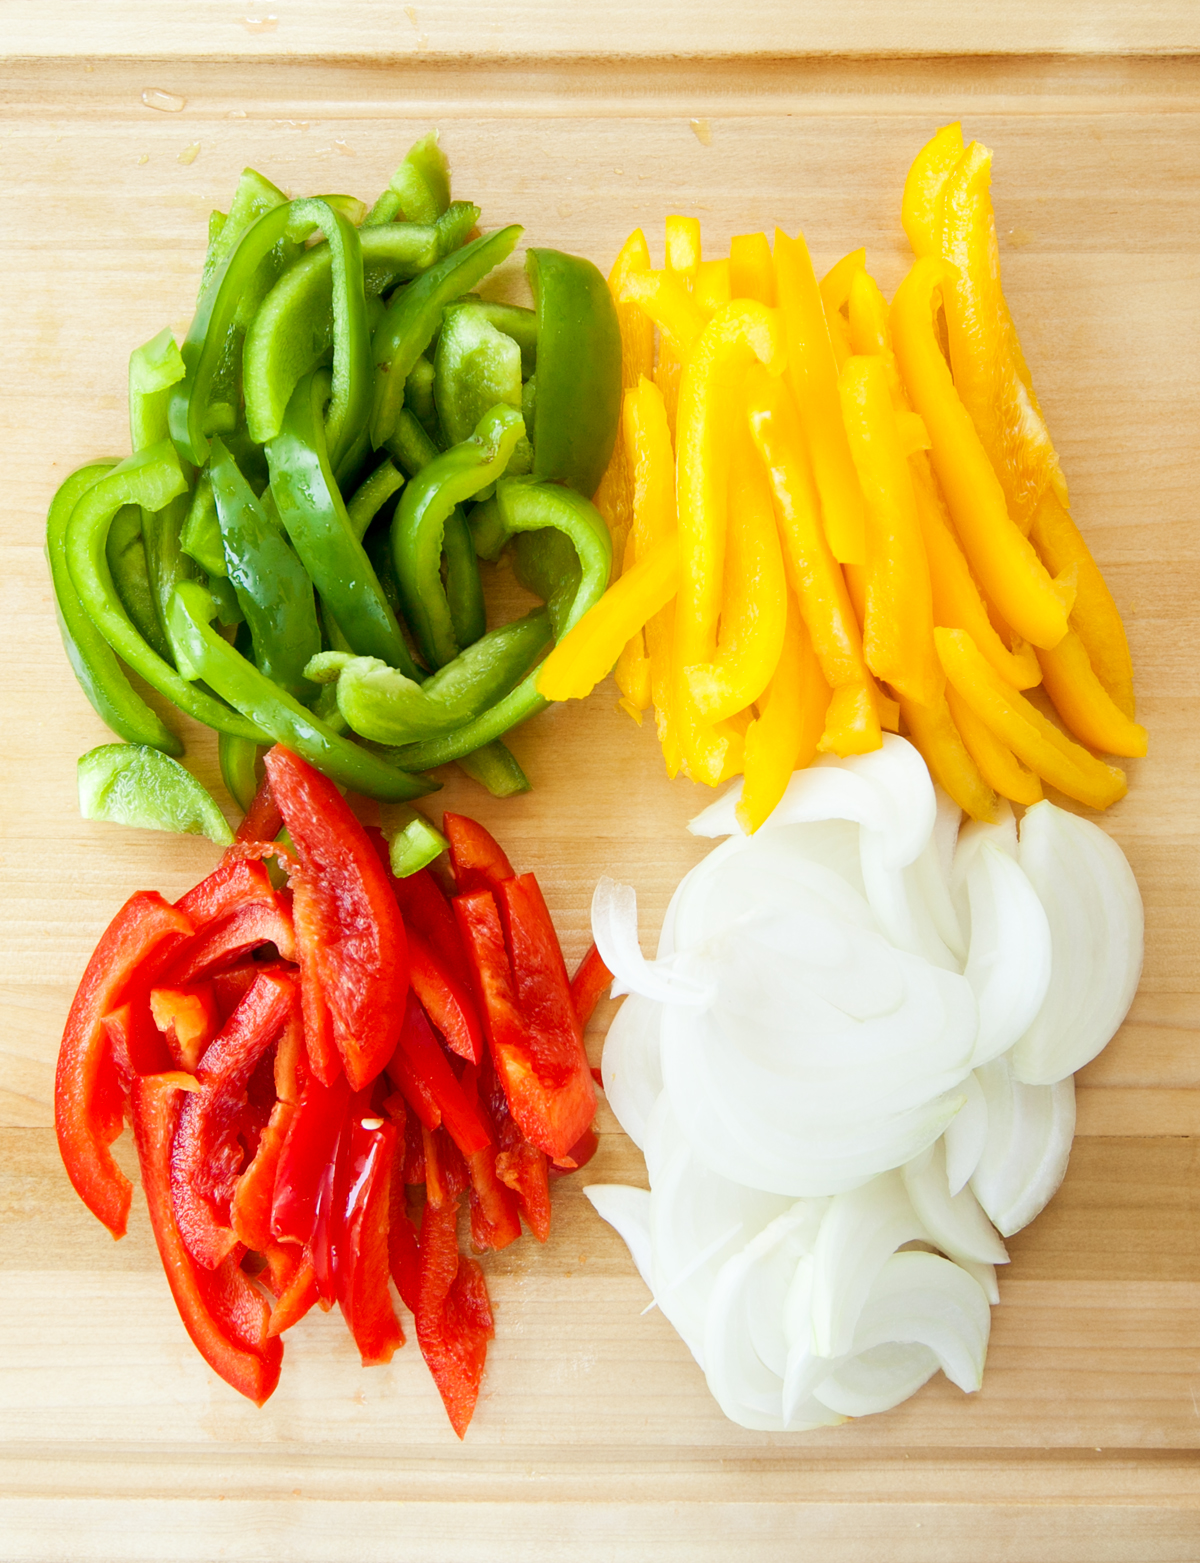 overhead view of red, green, and yellow bell peppers and onions on a cutting board